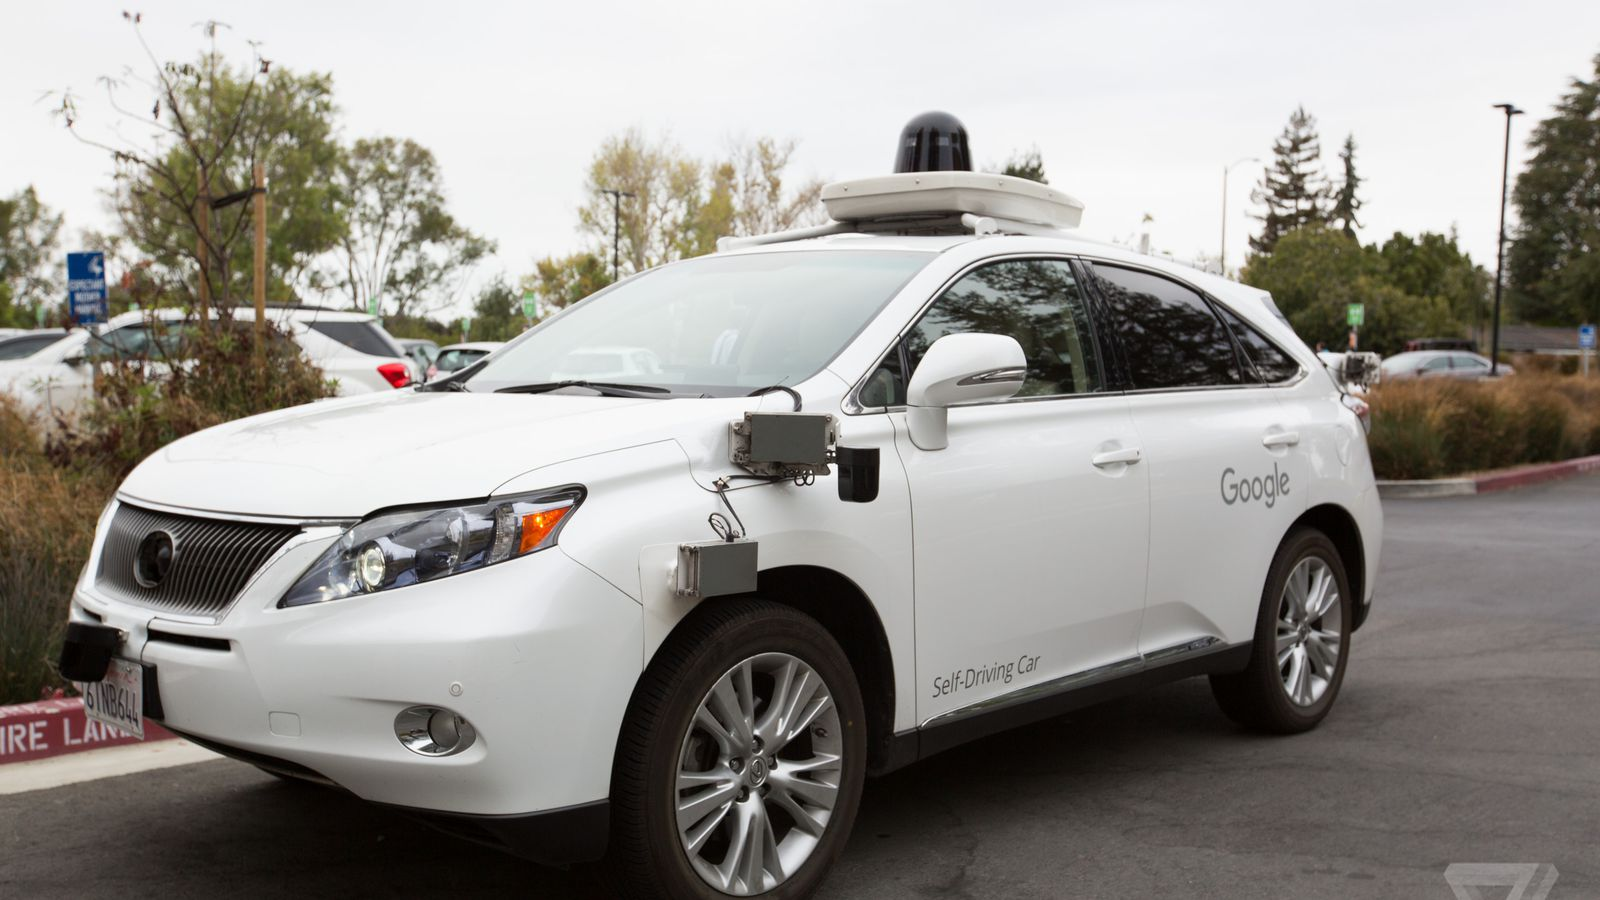 We took a ride in Alphabet's self-driving car, which just hit 2 million miles traveled on public roads - The Verge